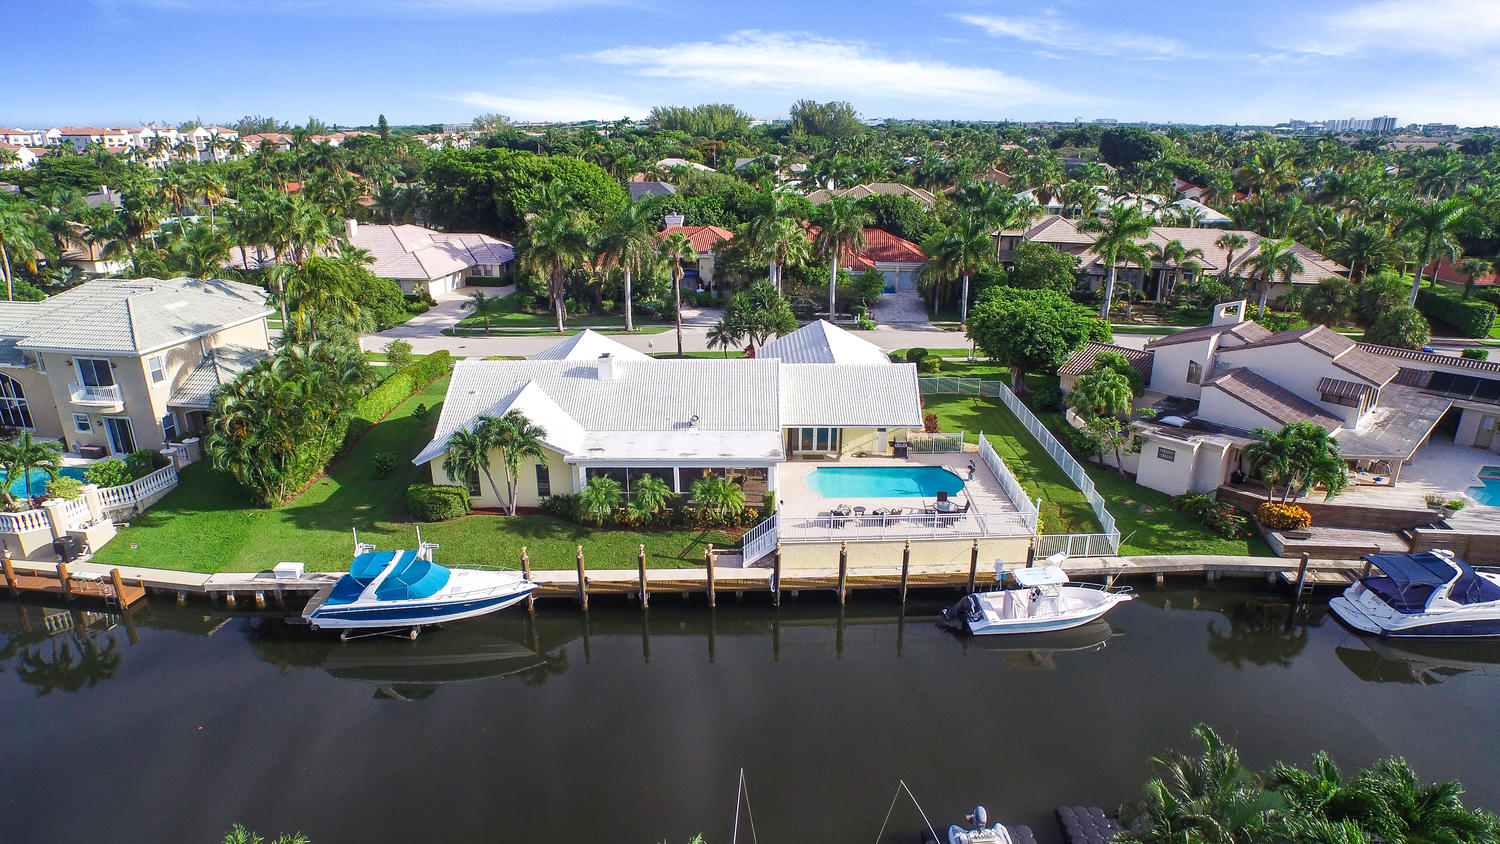 800 NE Orchid Bay Dr, Boca Raton, FL 33487 - 145 feet on Deep Water